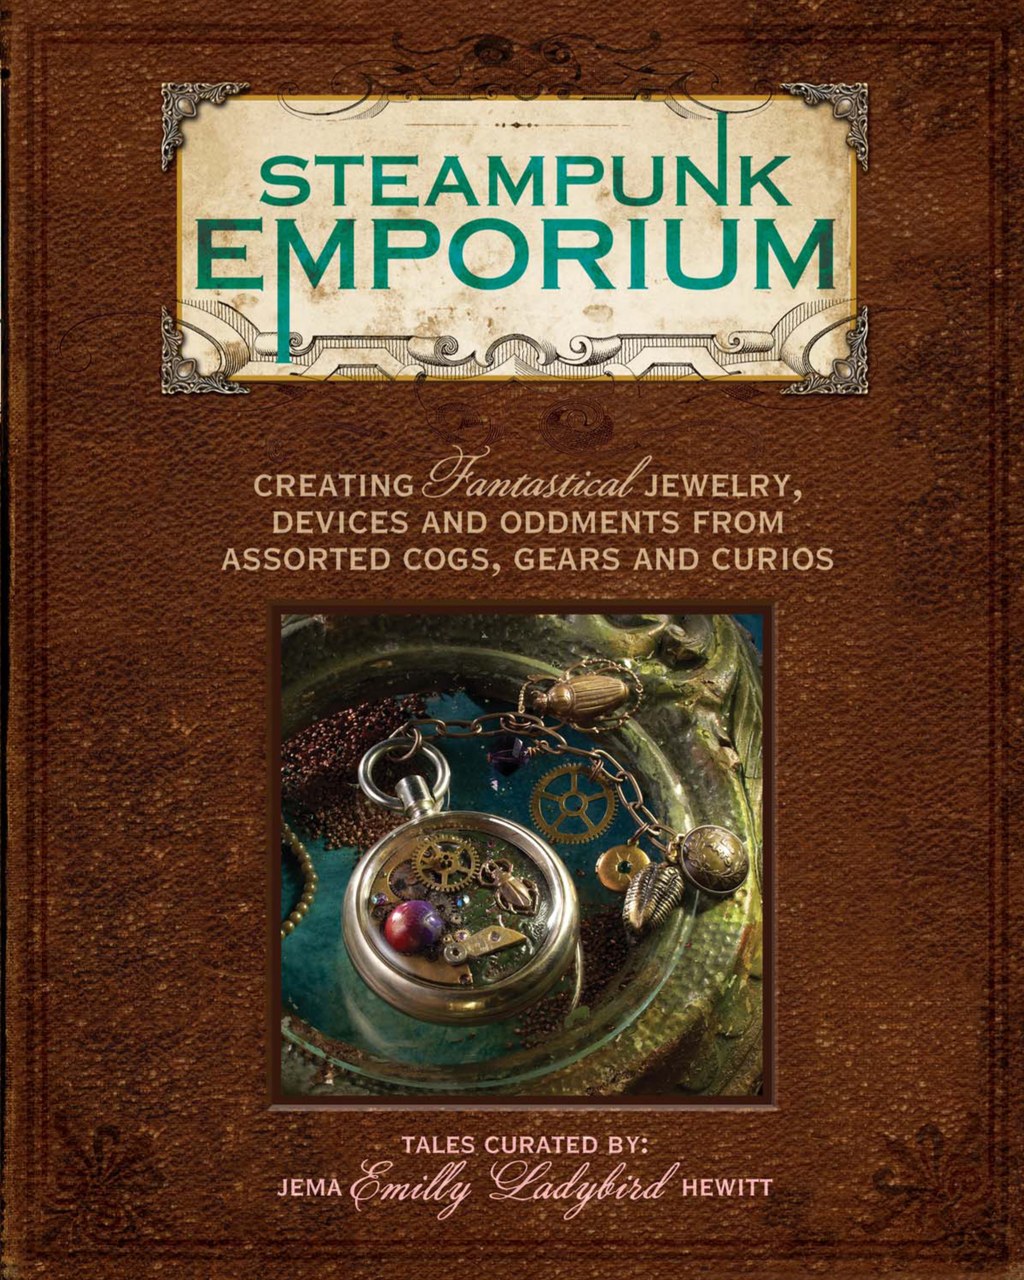 Steampunk Emporium Creating Fantastical Jewelry, Devices and Oddments from Assorted Cogs, Gears and Curios